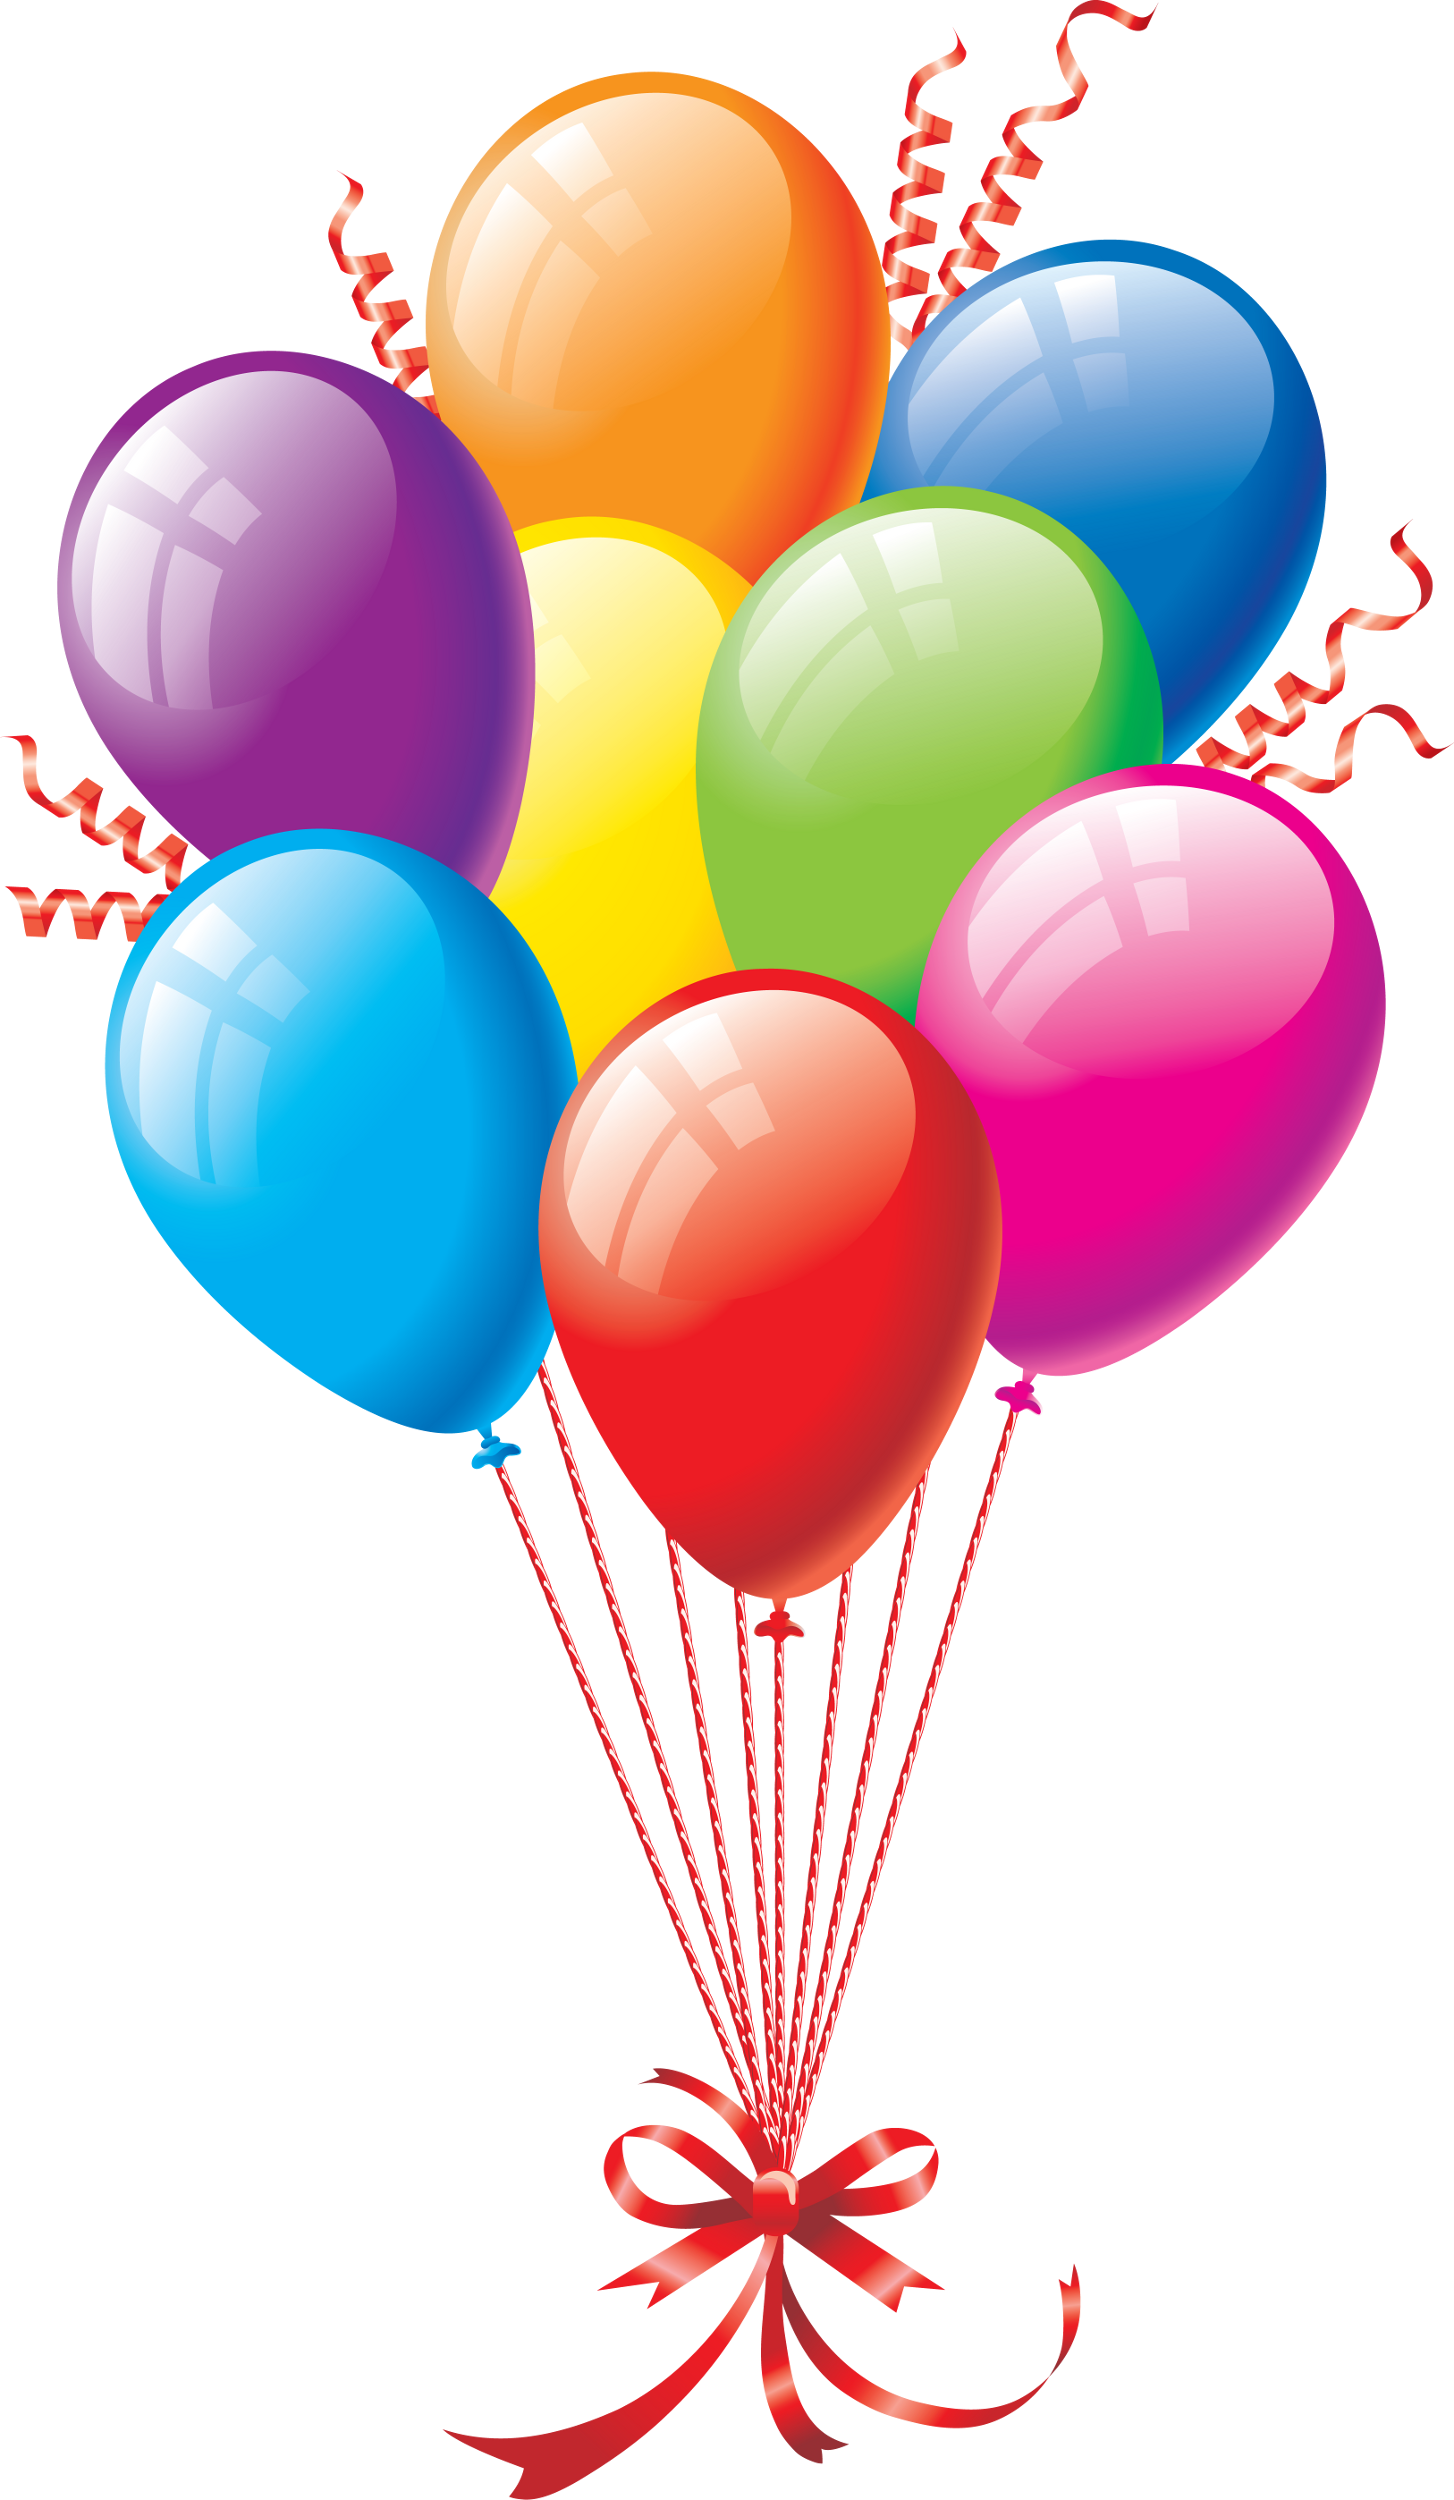 Party png pesquisa google. Surprise clipart birthday surprise